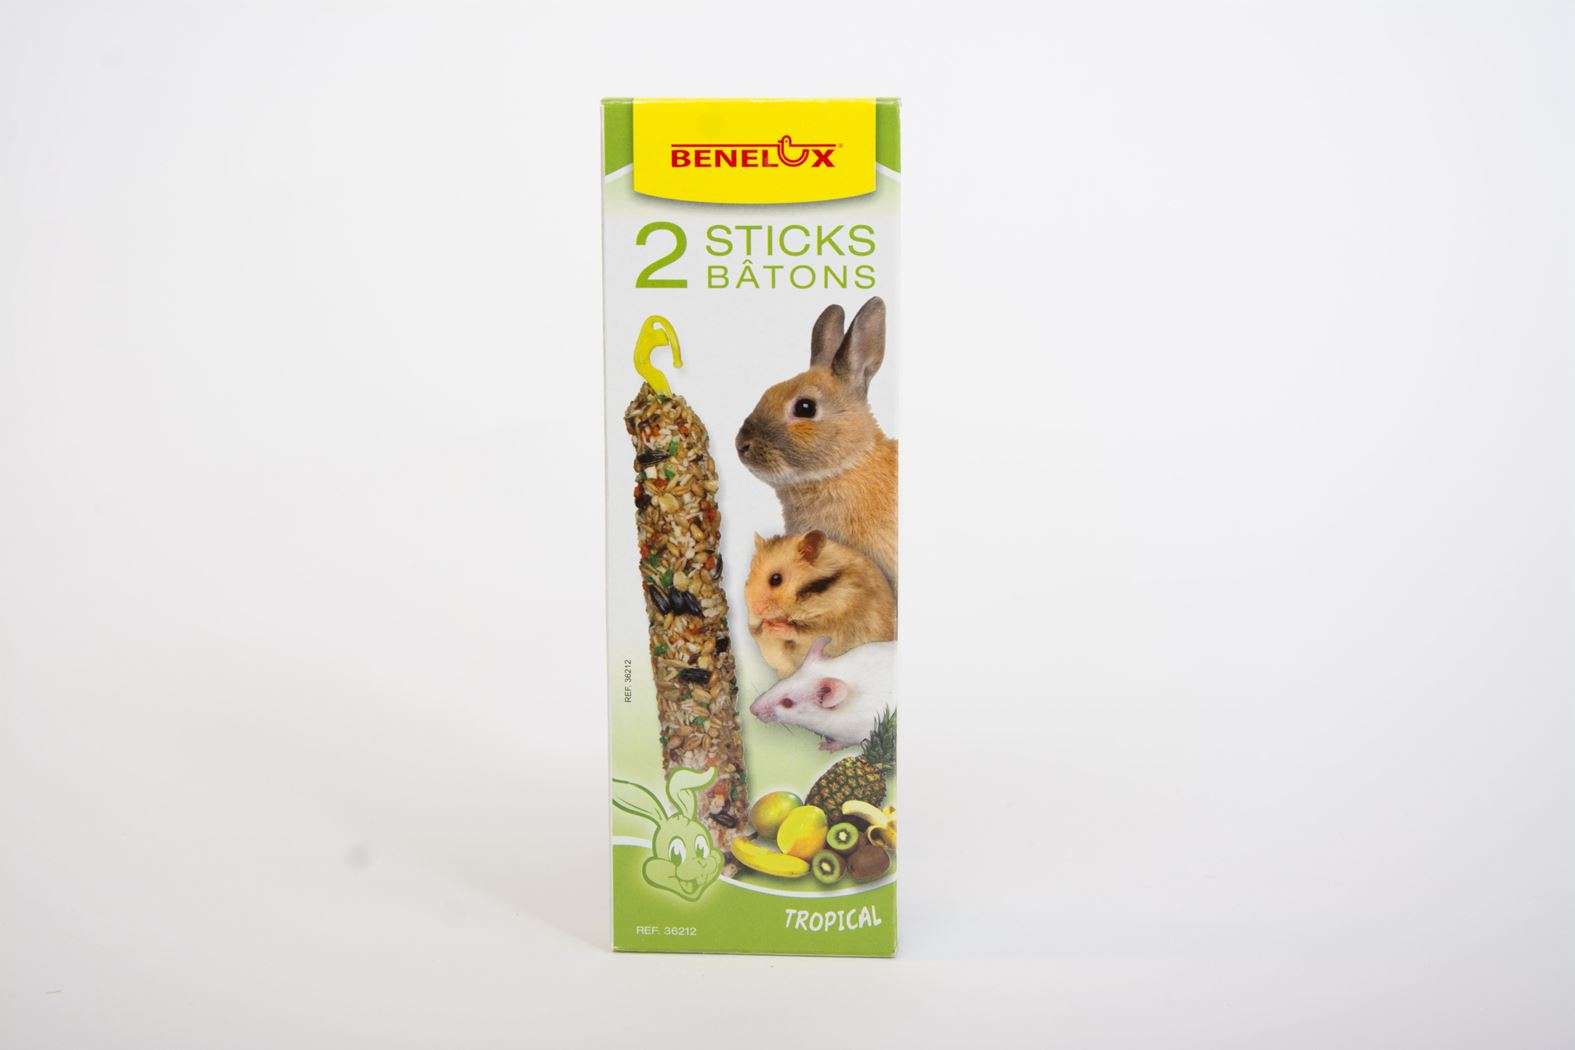 benelux-sticks-knaagdier-tropical-2sts